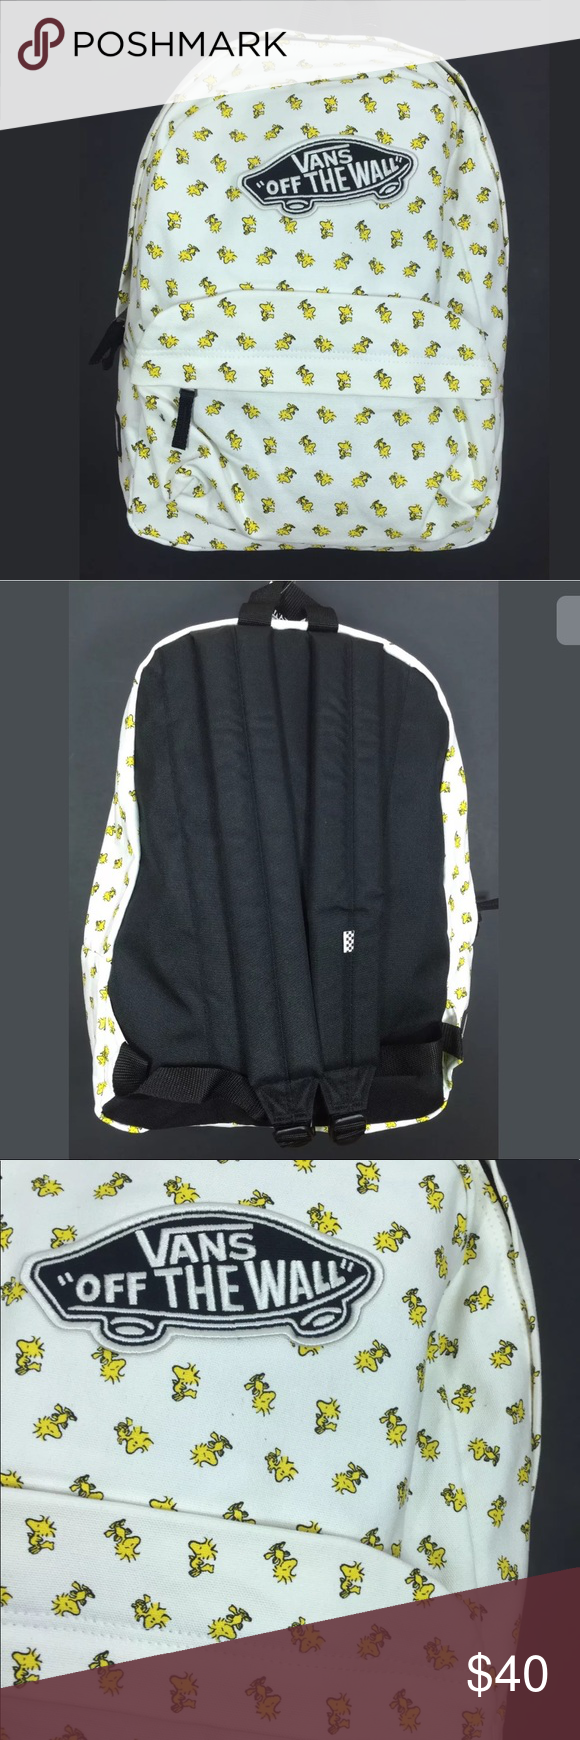 ccae72048b6 NEW Vans X Peanuts Woodstock Backpack White NWT One brand new with tags Vans  X Peanuts